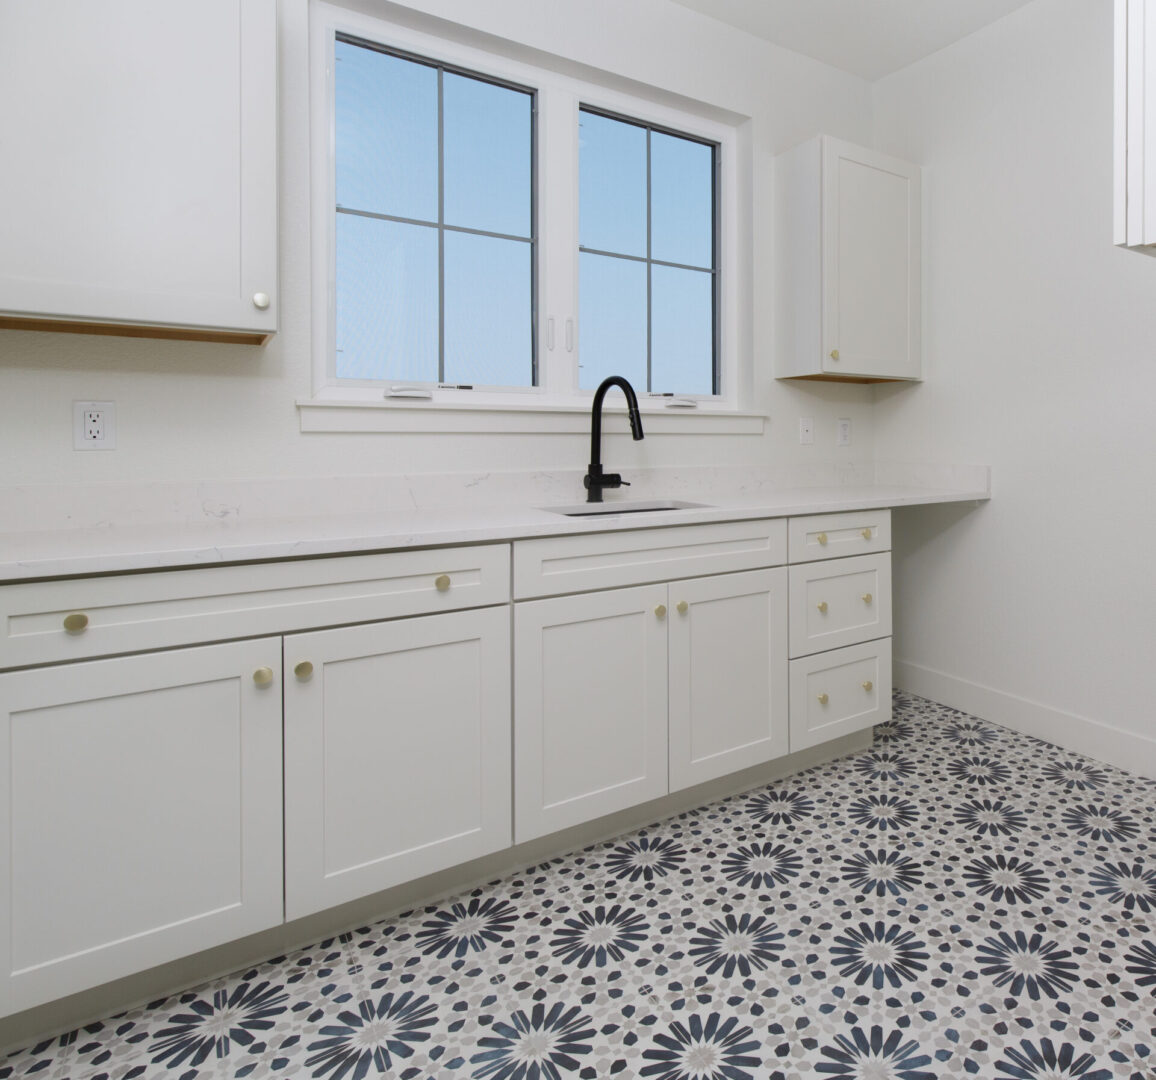 white bathroom sink with patterned tiles